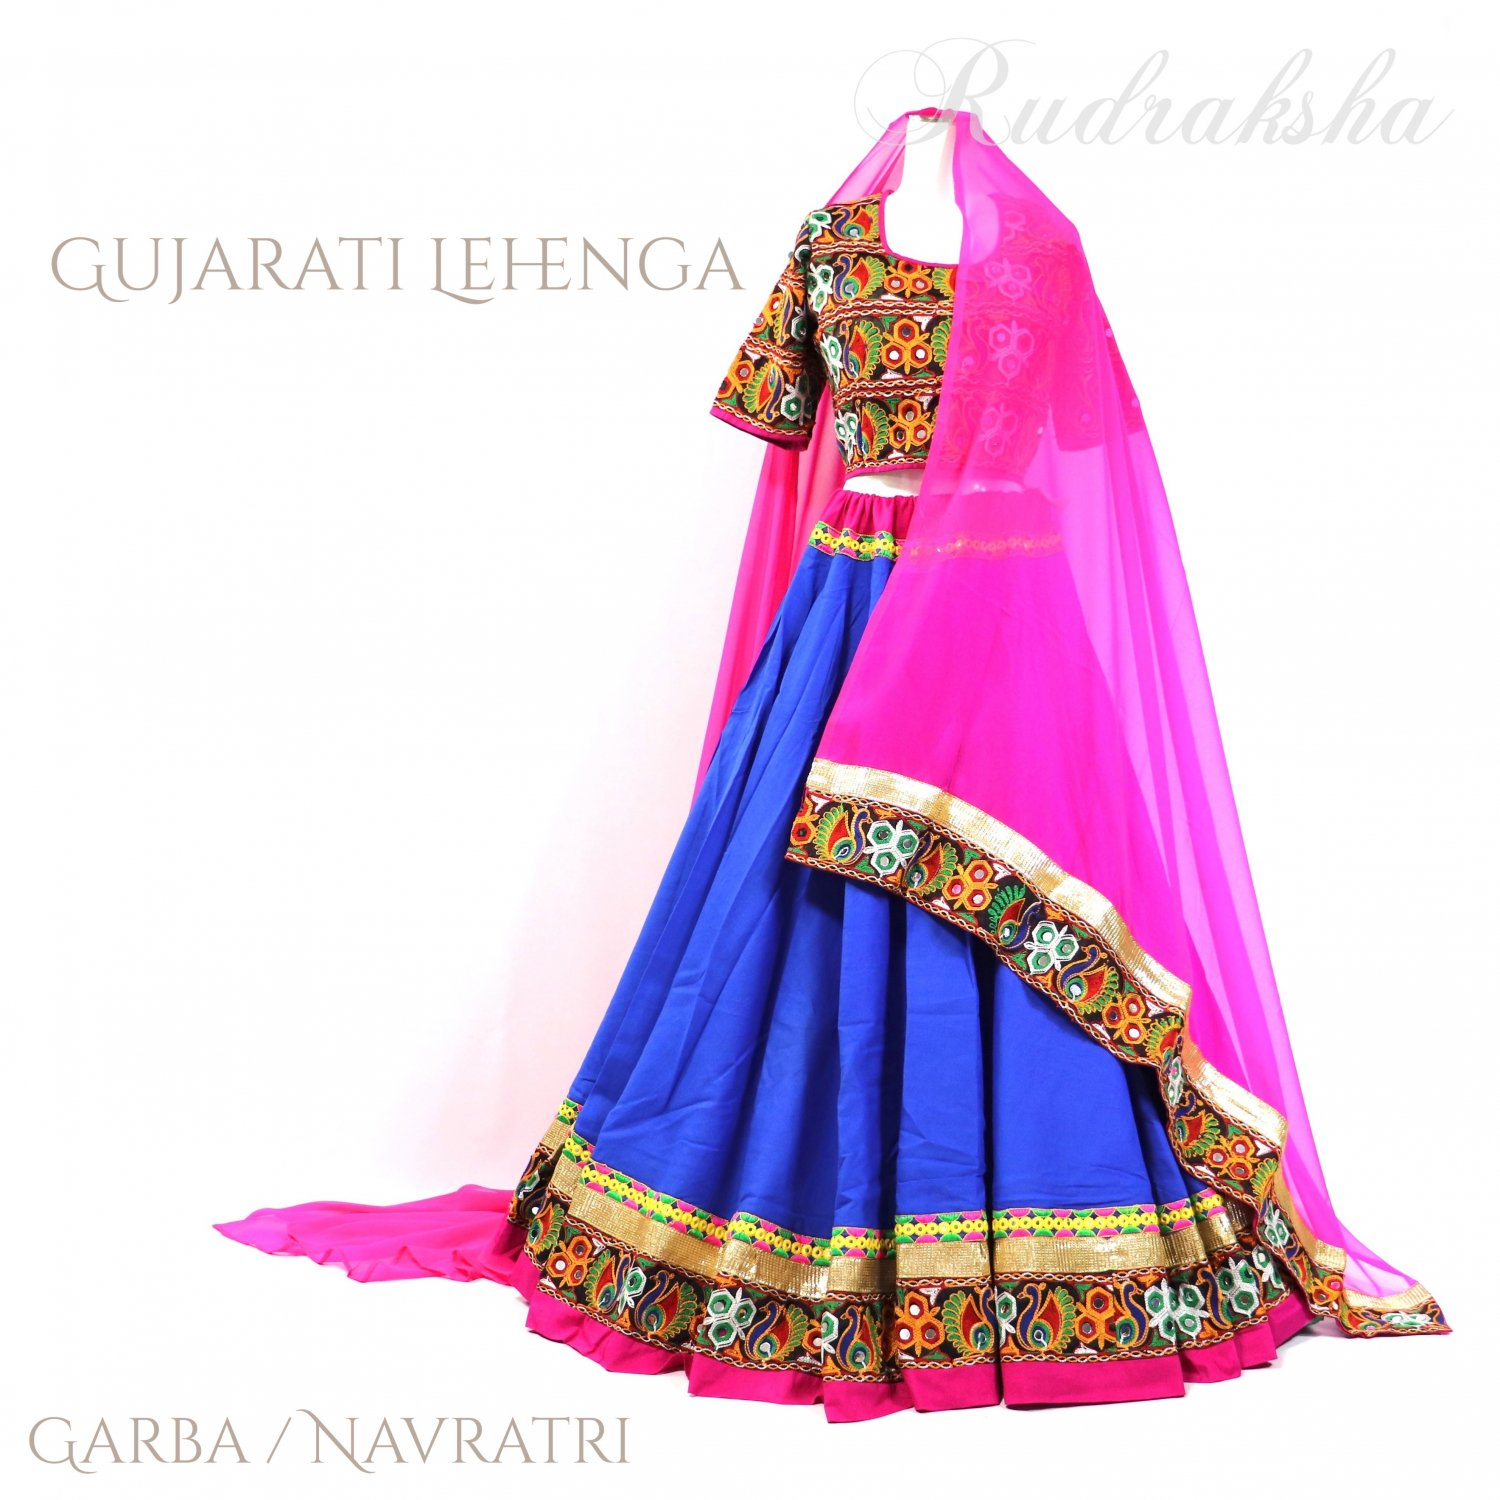 <img class='new_mark_img1' src='https://img.shop-pro.jp/img/new/icons1.gif' style='border:none;display:inline;margin:0px;padding:0px;width:auto;' />Rajasthani Lehenga <ロイヤルブルーxピンク> ◇◆ インド民族衣装 ラジャスタンレヘンガ